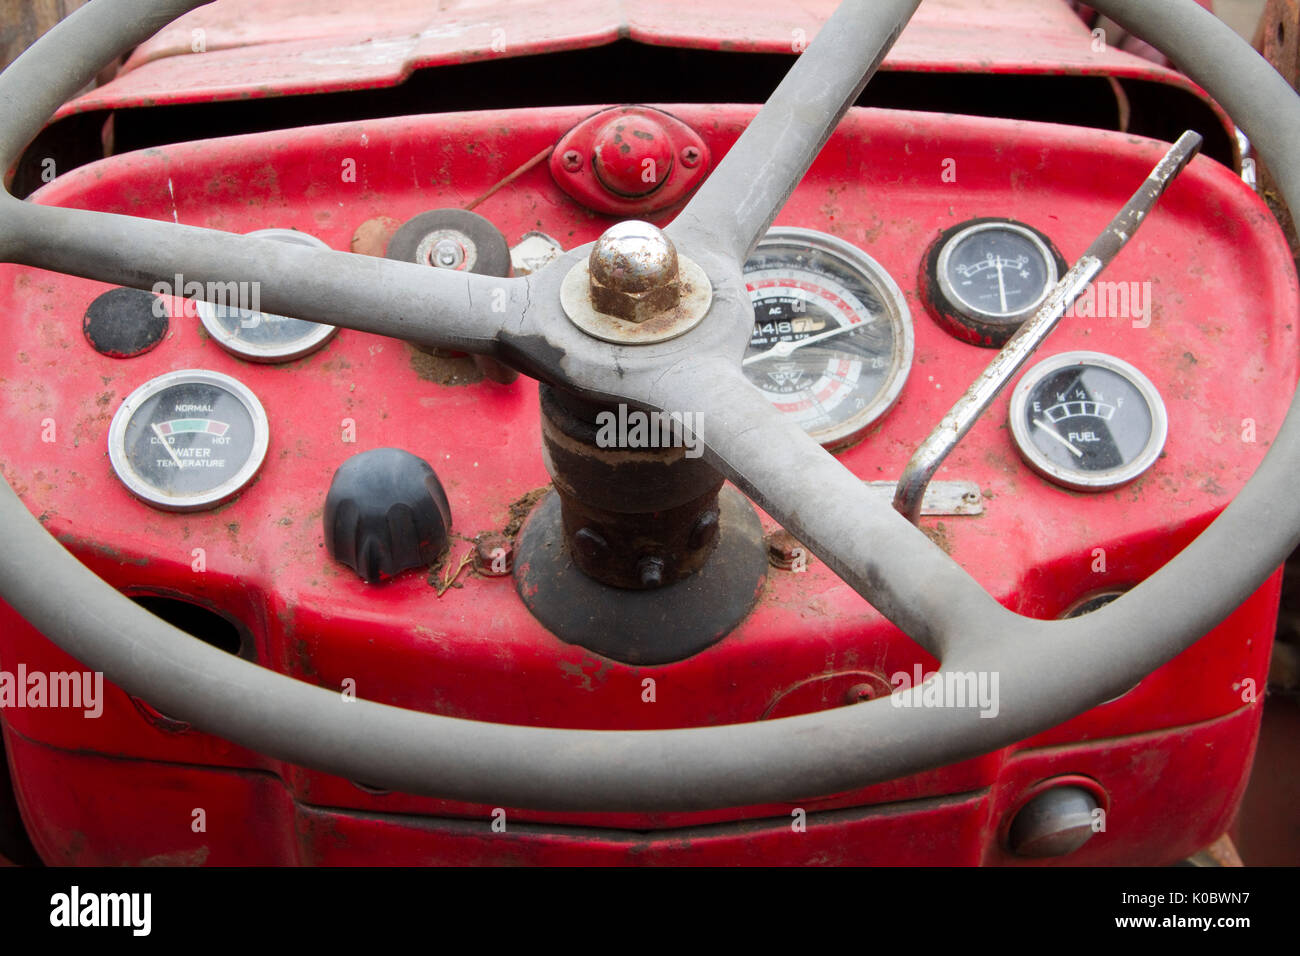 Steering wheel and instruments on an old tractor - Stock Image